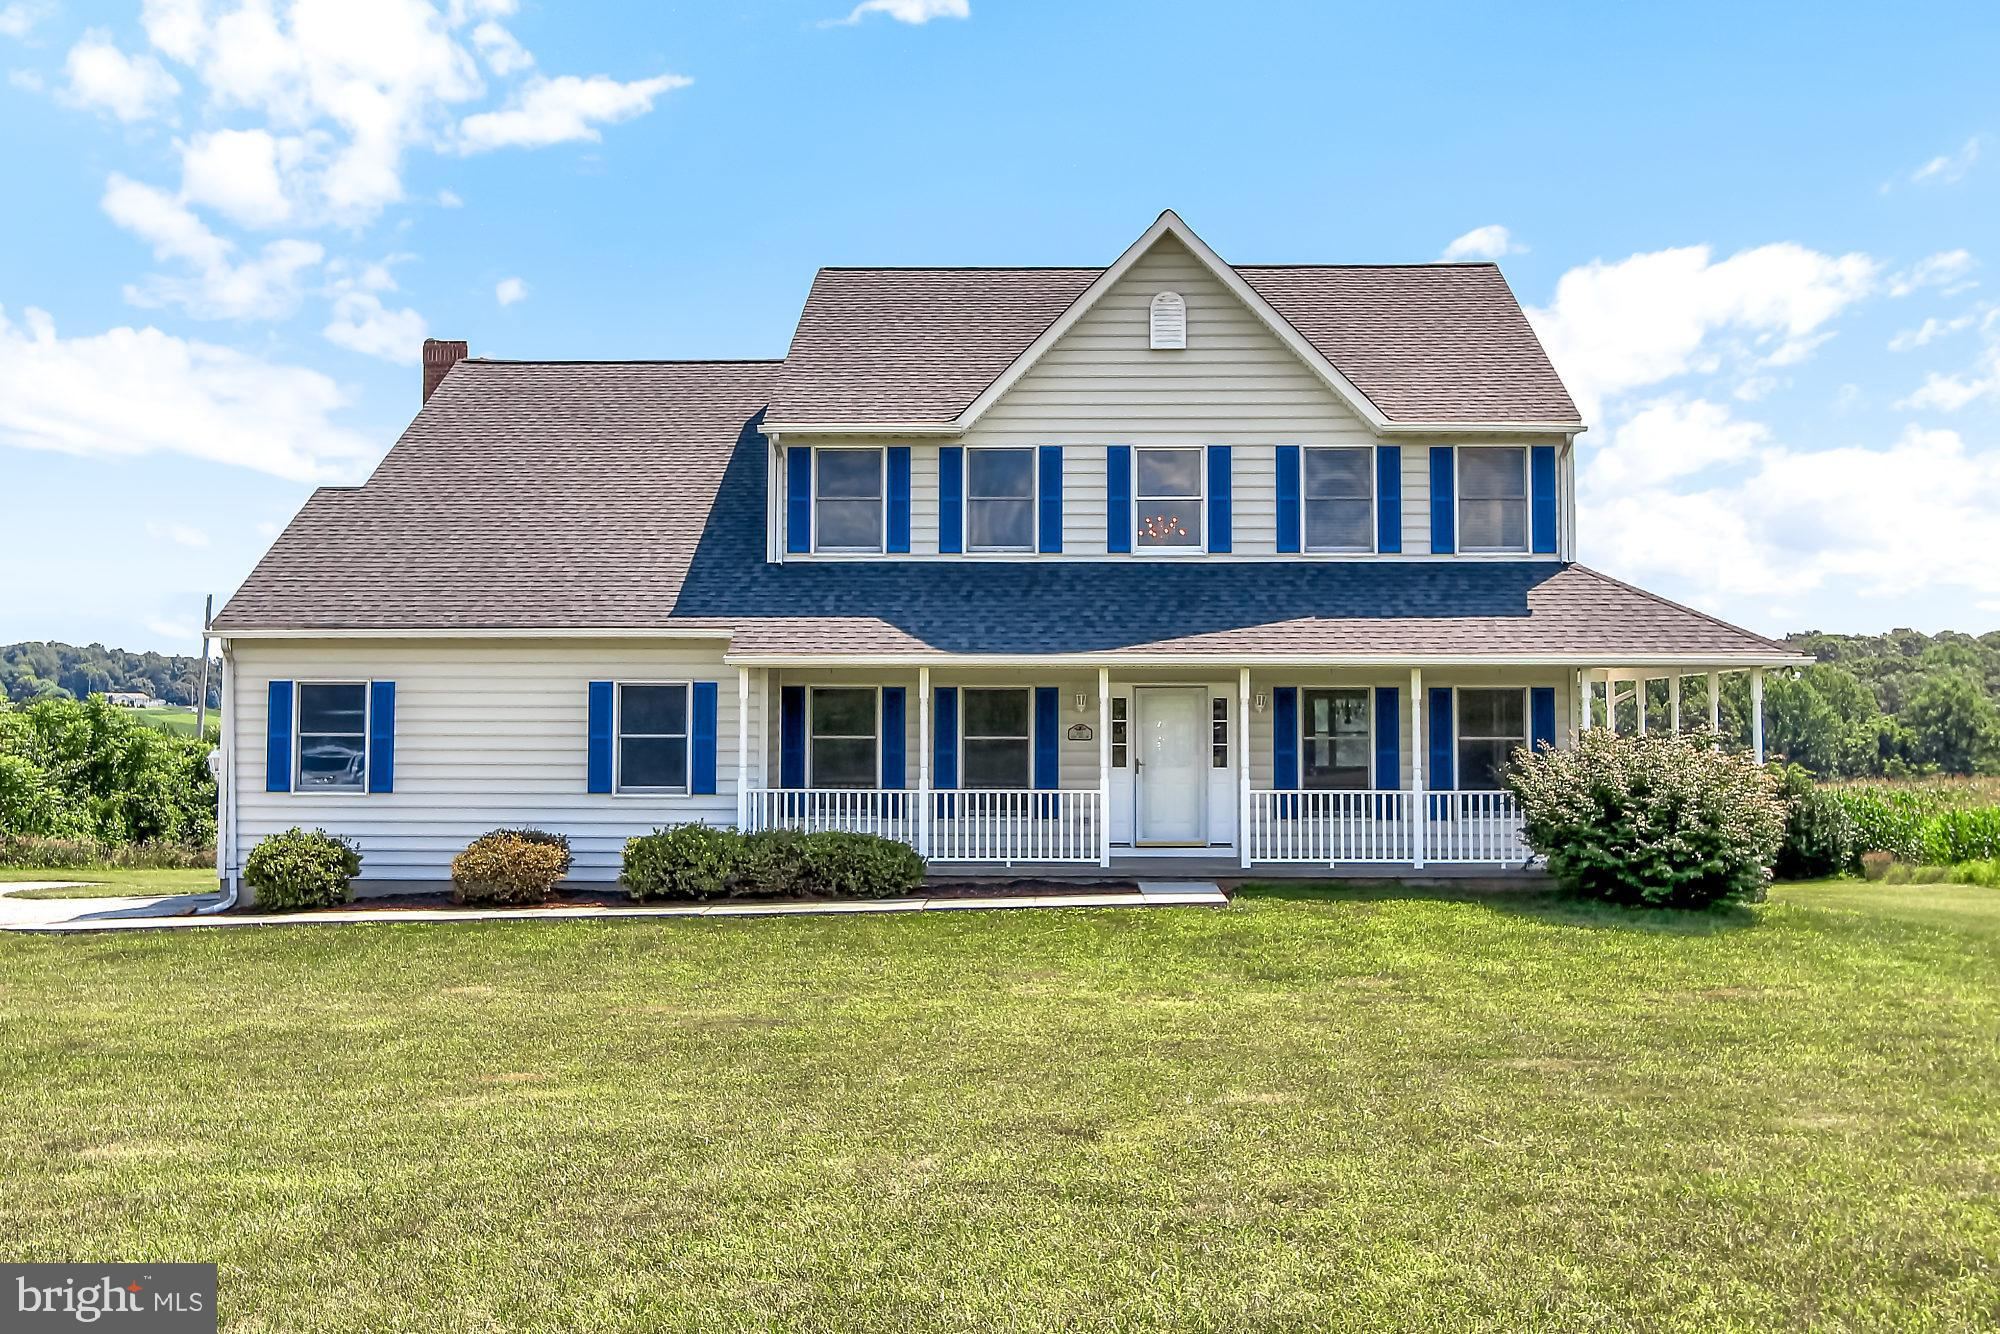 221 BLUE BALL ROAD, NEW PARK, PA 17352